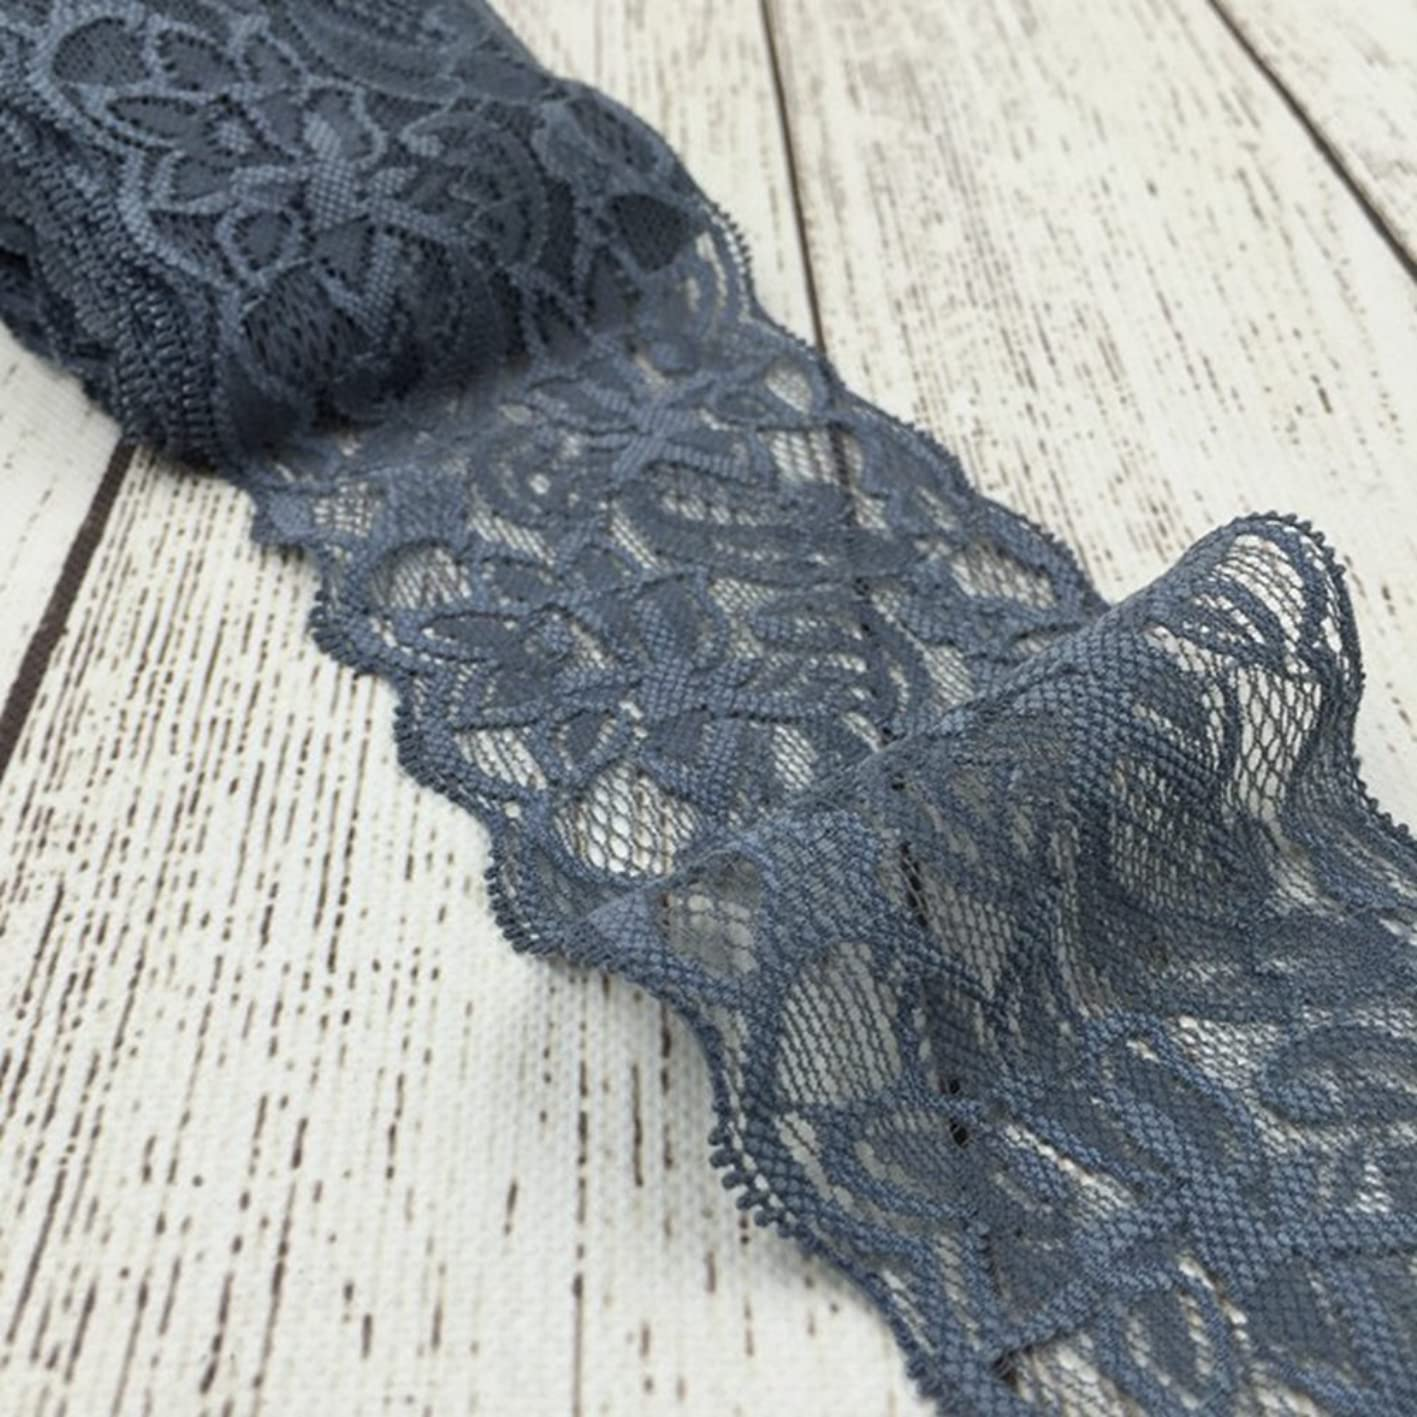 Grey Lace Trim, Tulle Lace Ribbon, Stretch Lace Fabric by The Yard for Sewing Baby Girls Hair Accessories (3.15 inch Wide, Grey, 10 Yards) xfndpqtxmlr668